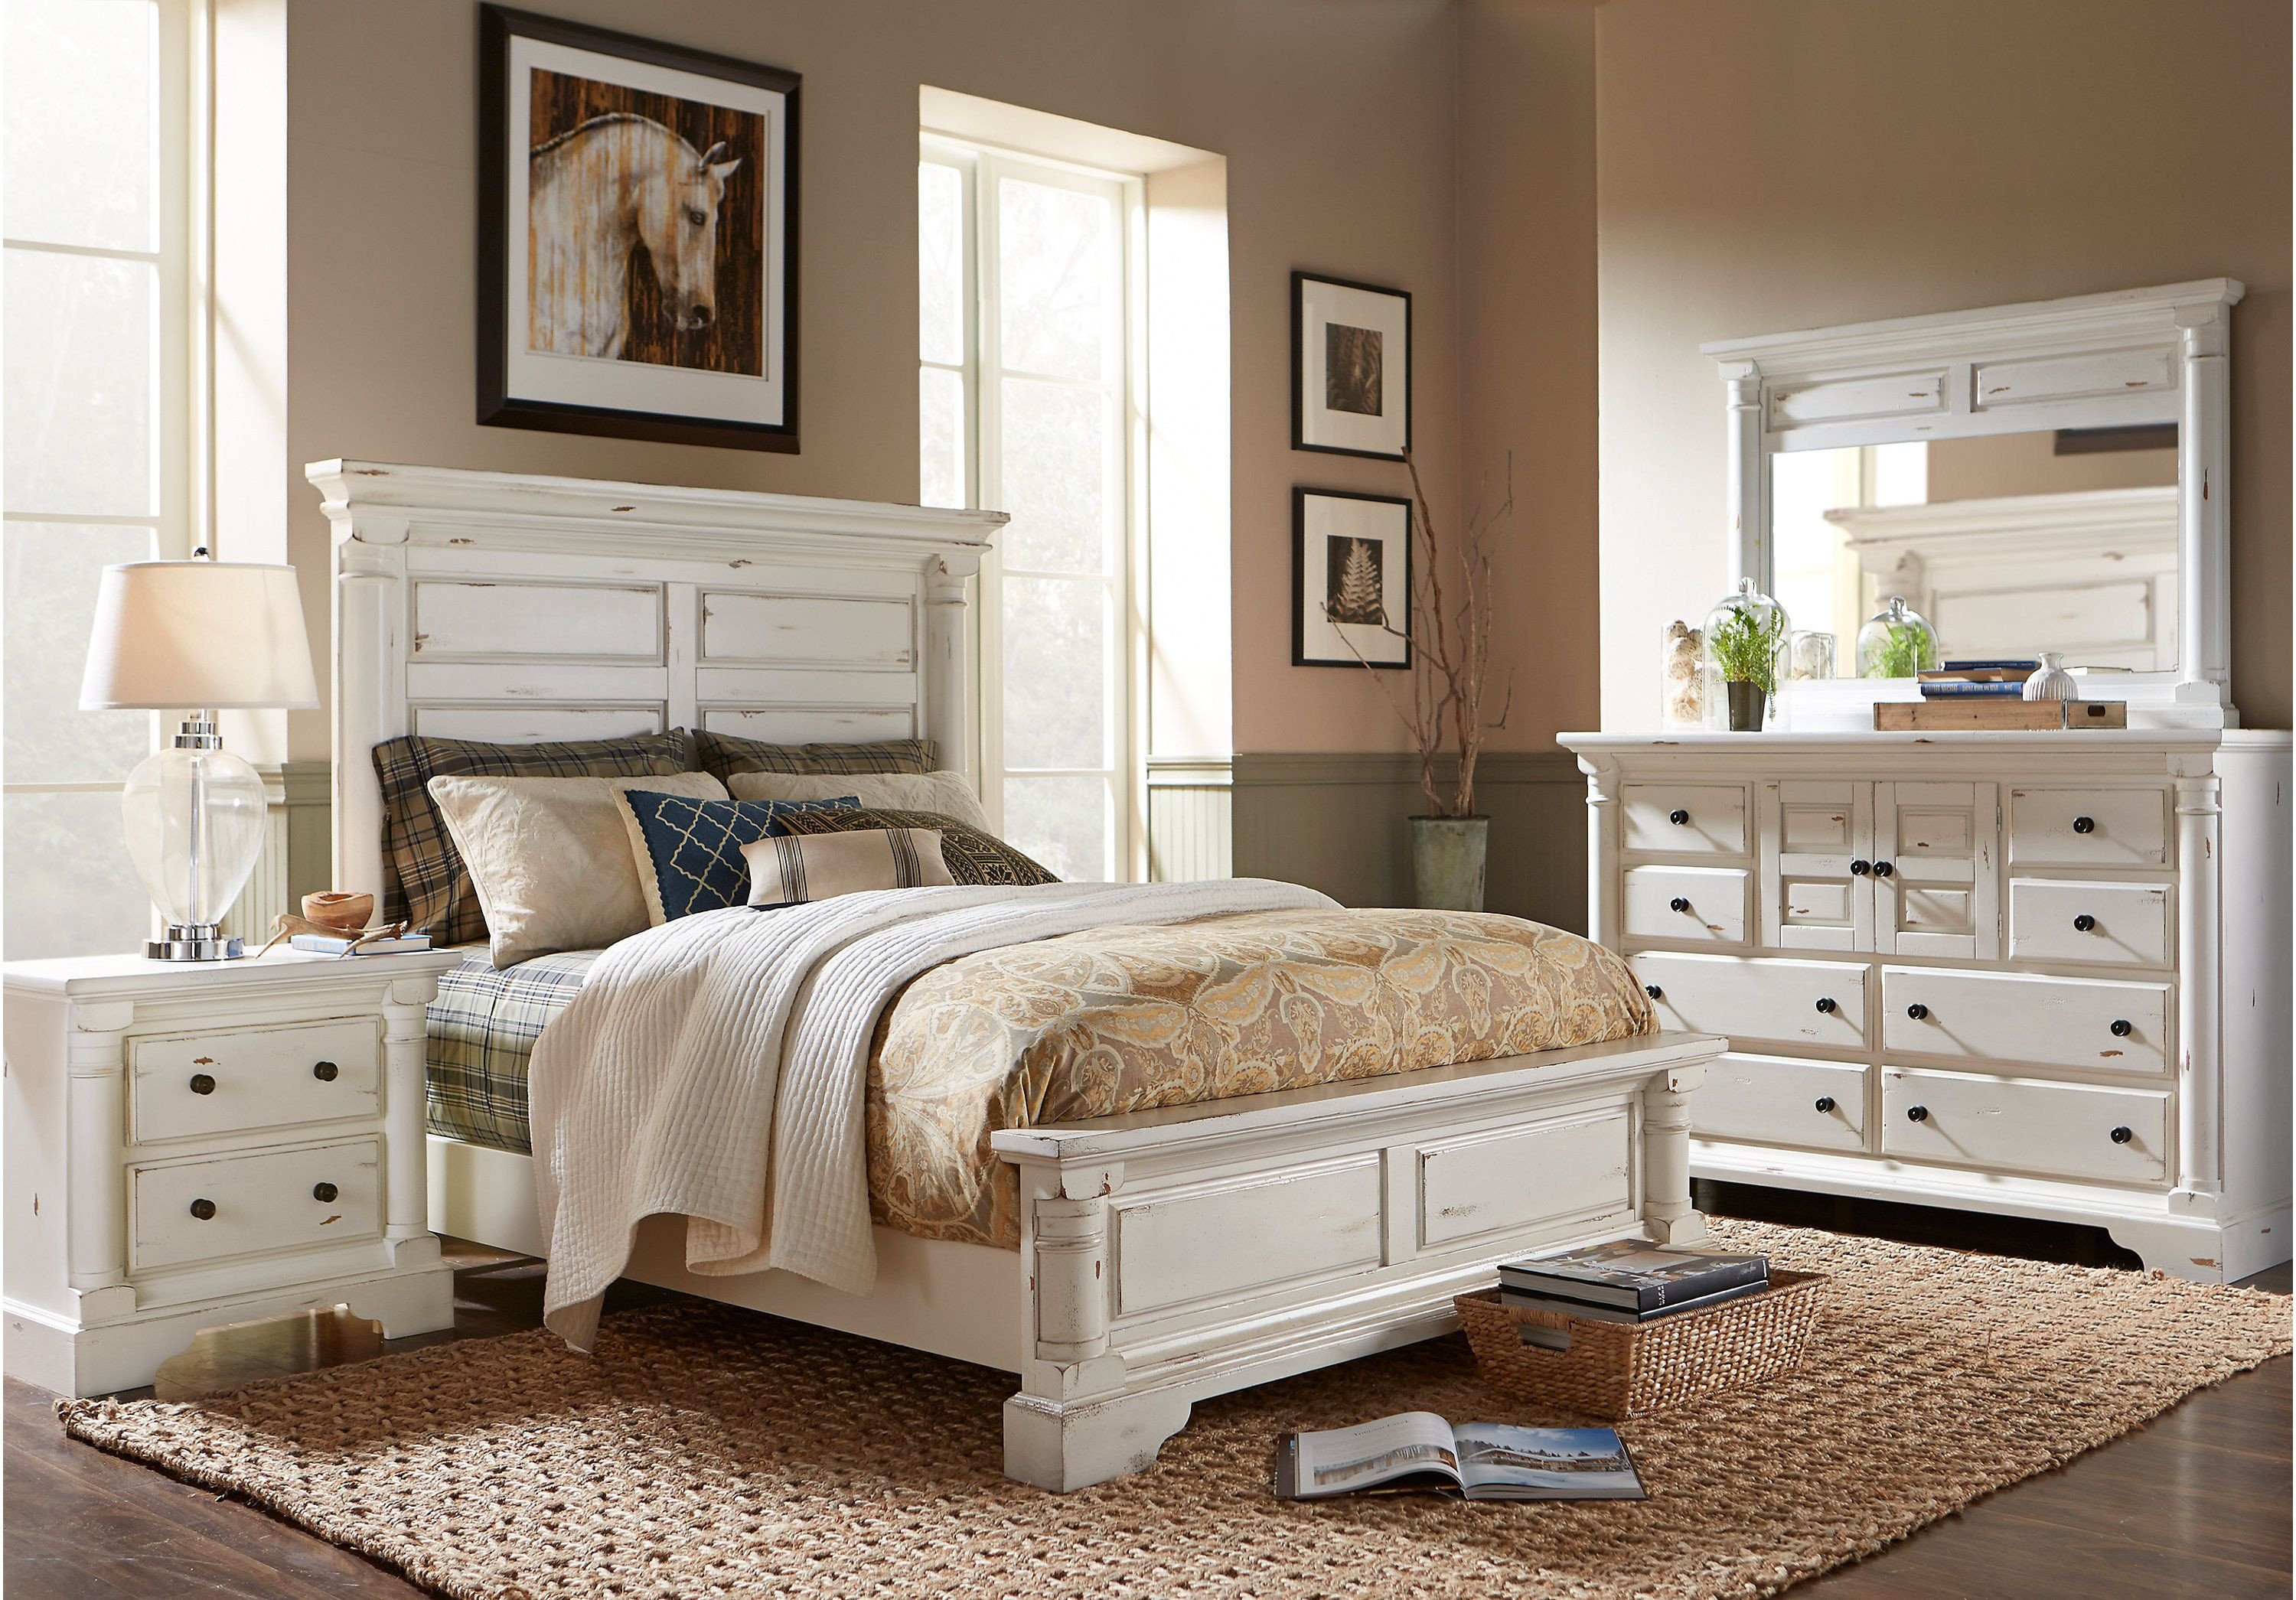 Childrens Bedroom Furniture Set Best Of Bedroom Charming Roomstogokids with Beautiful Decor for